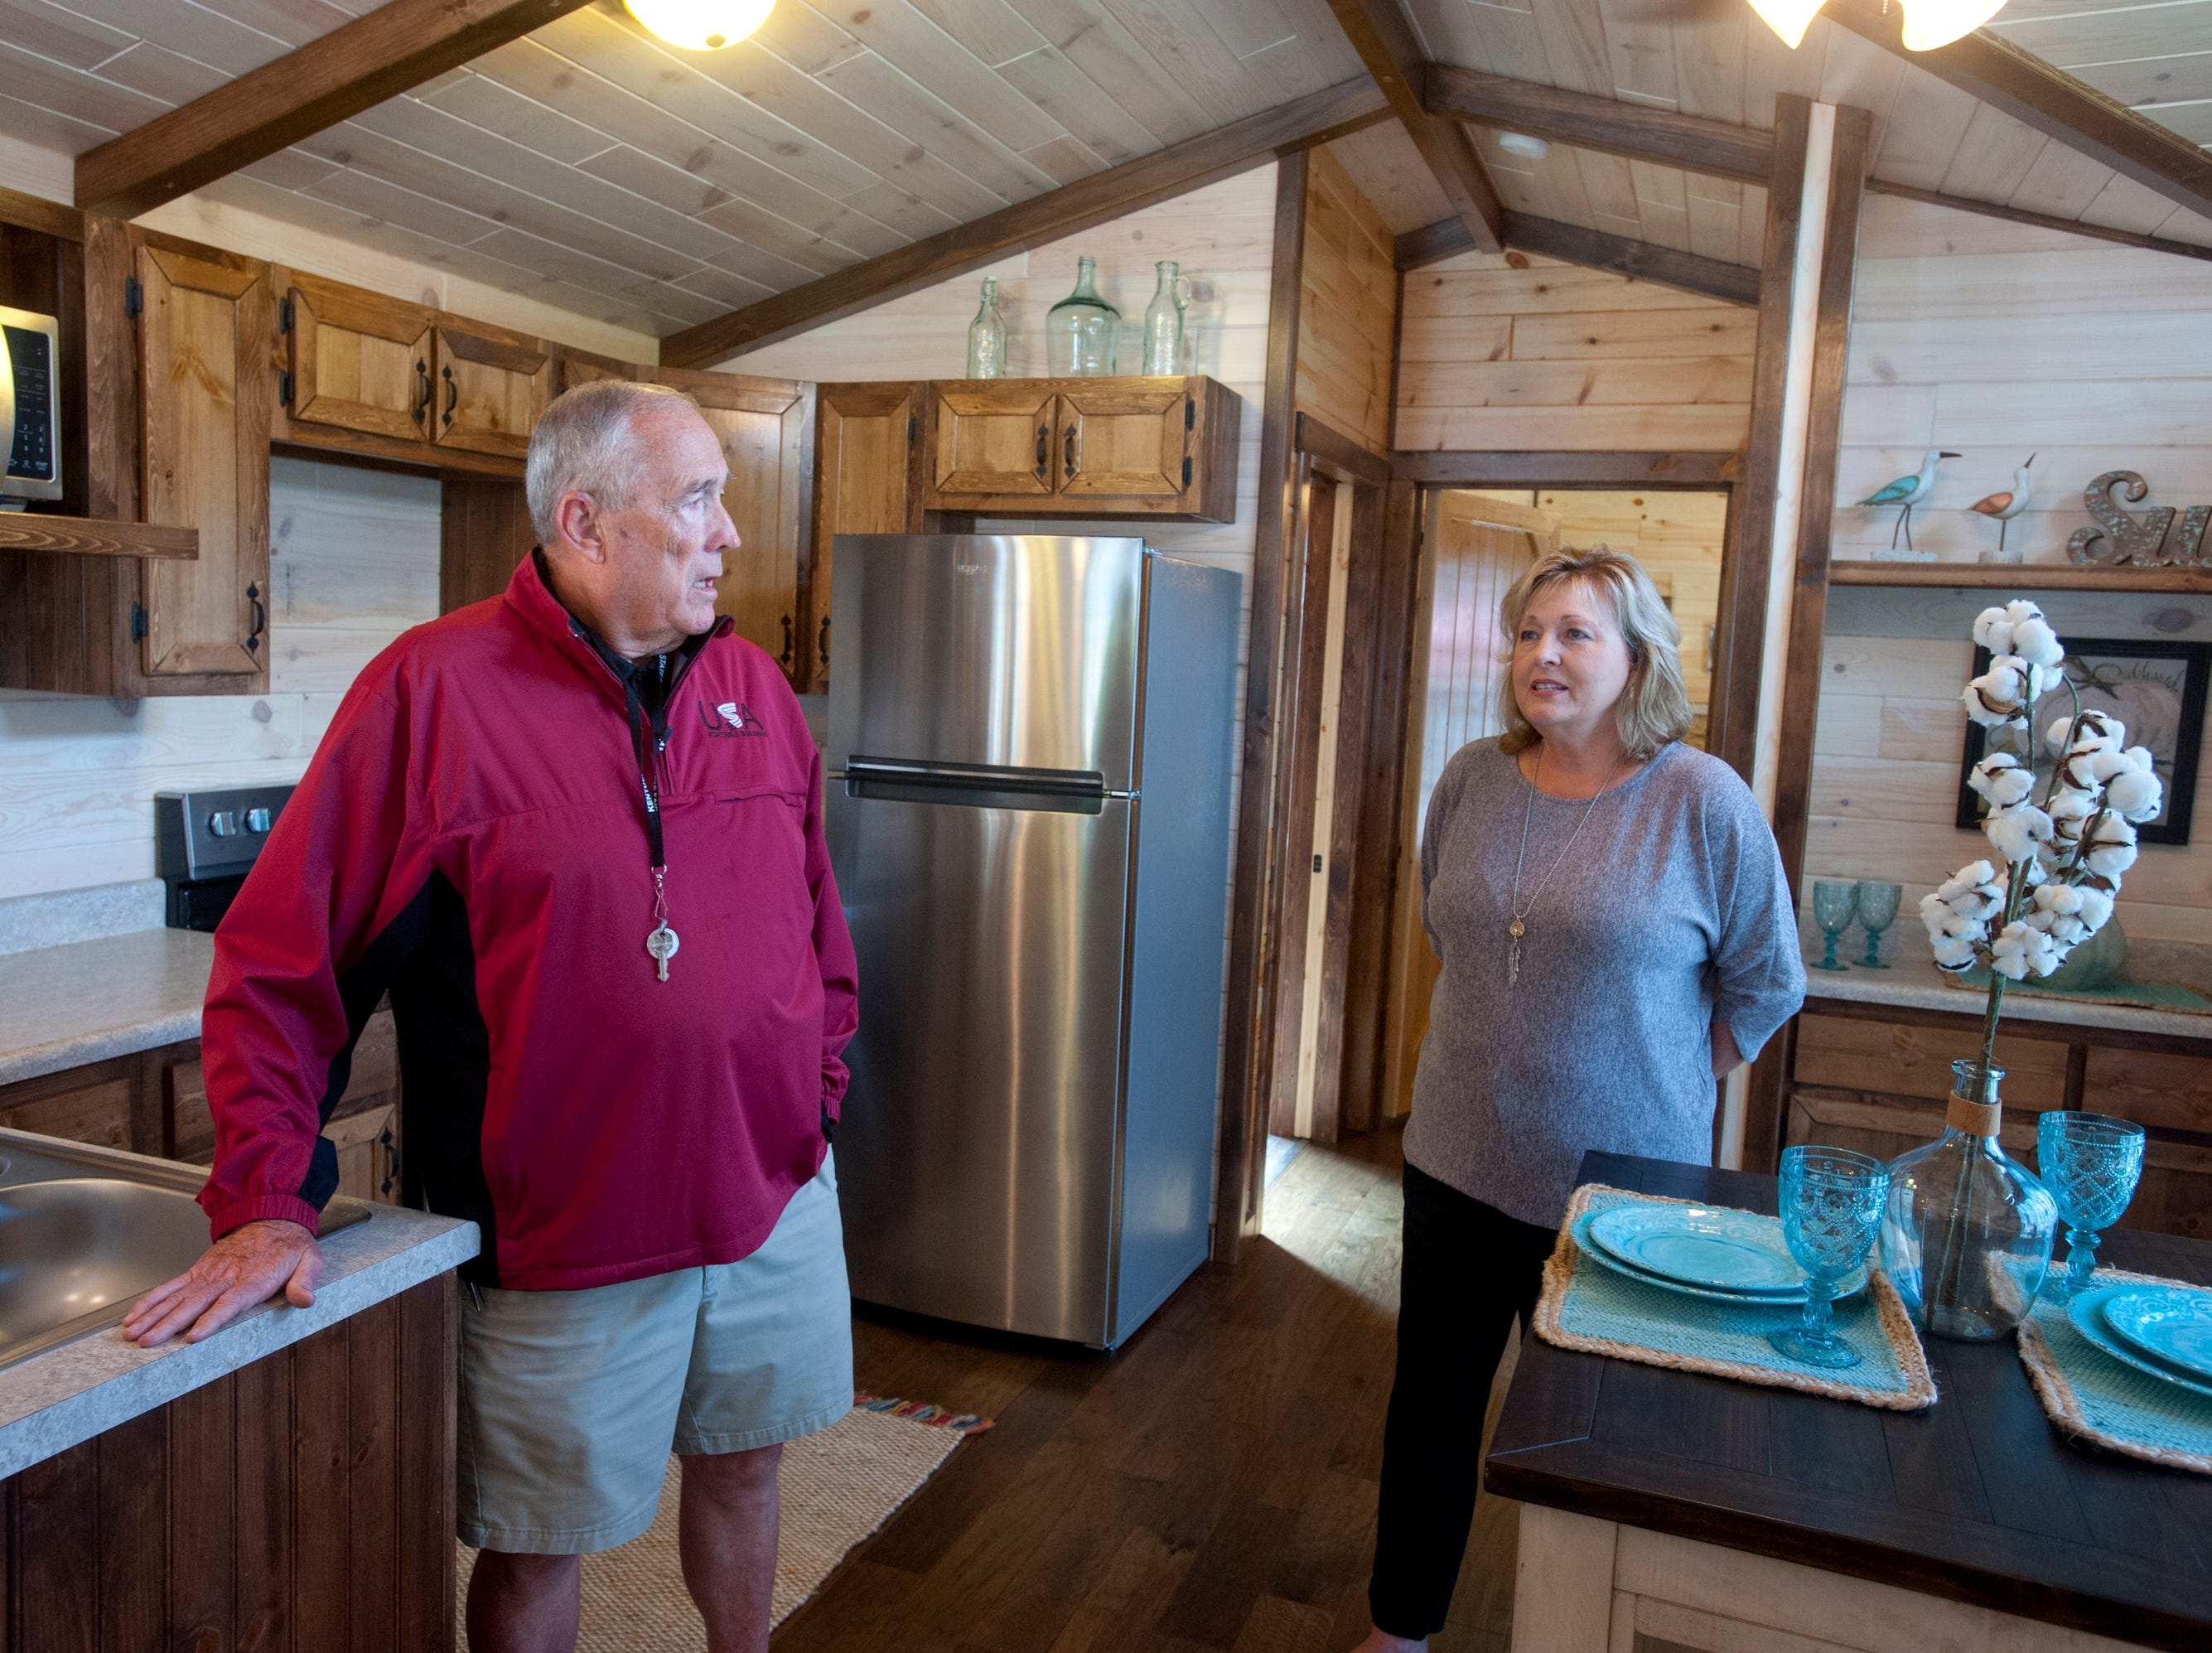 """Amish Made Cabins of Shepherdsville is making this """"White River"""" cottage, geared toward its elderly and disabled customers. Here, co-owners Jim and Pamela White chat in the home's open-concept kitchen.September 10, 2018"""